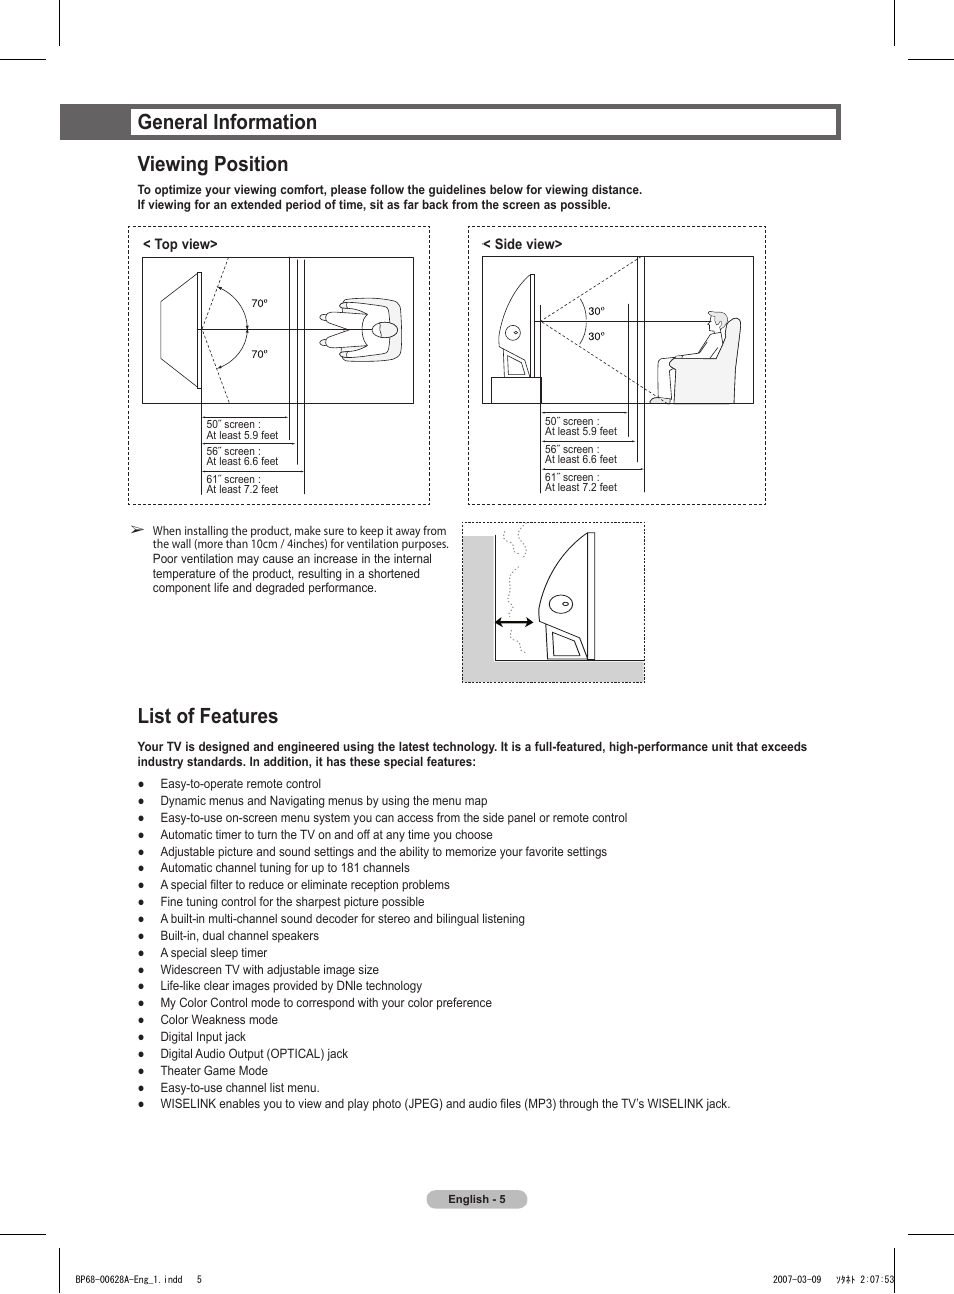 General information, Viewing position, List of features